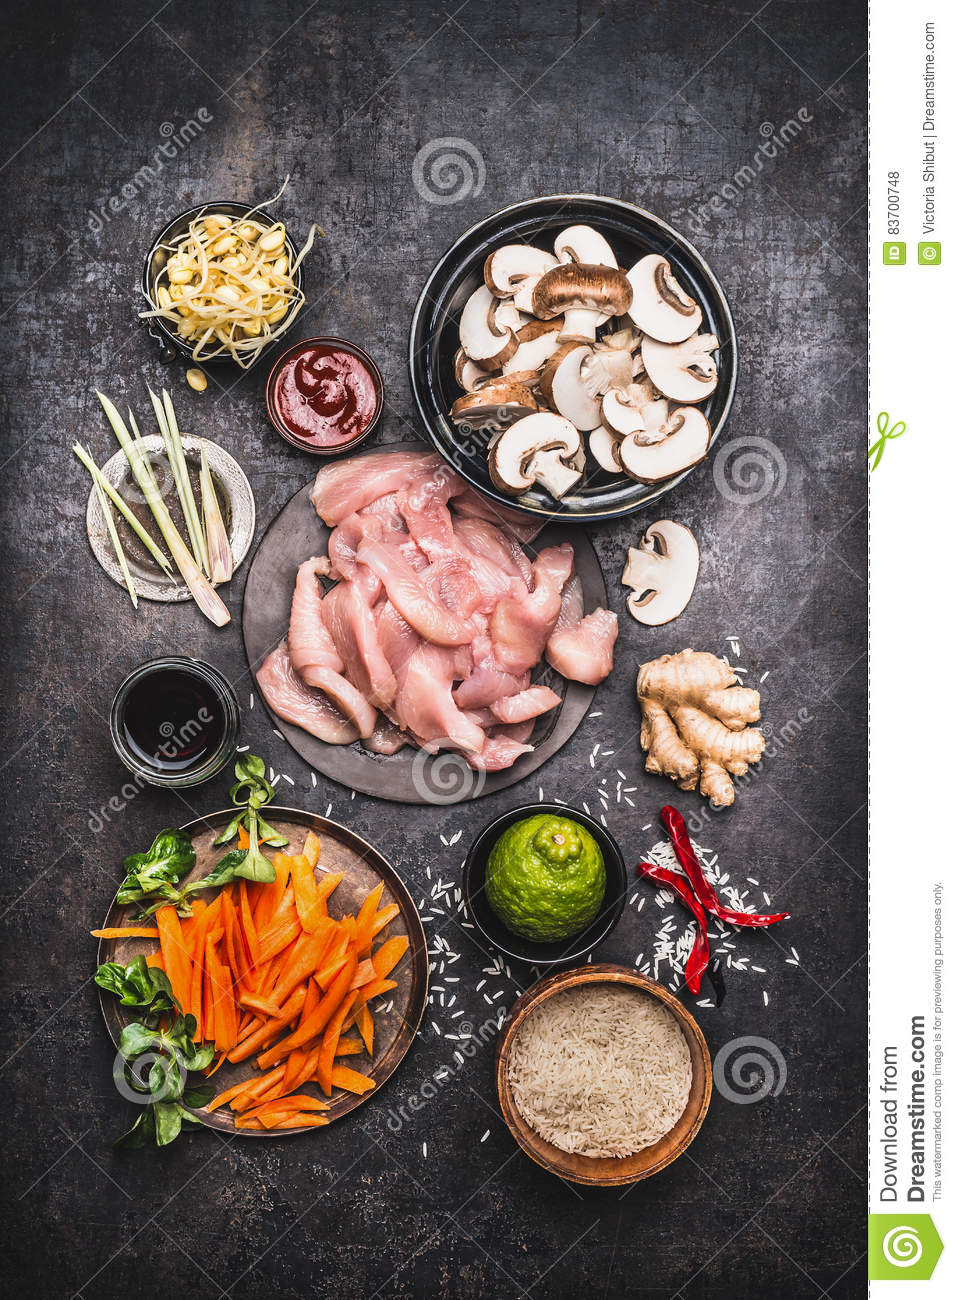 Asian Cooking Ingredients For Chicken Rice Dish With Vegetables On Dark Rustic Background , Top View Stock Photo